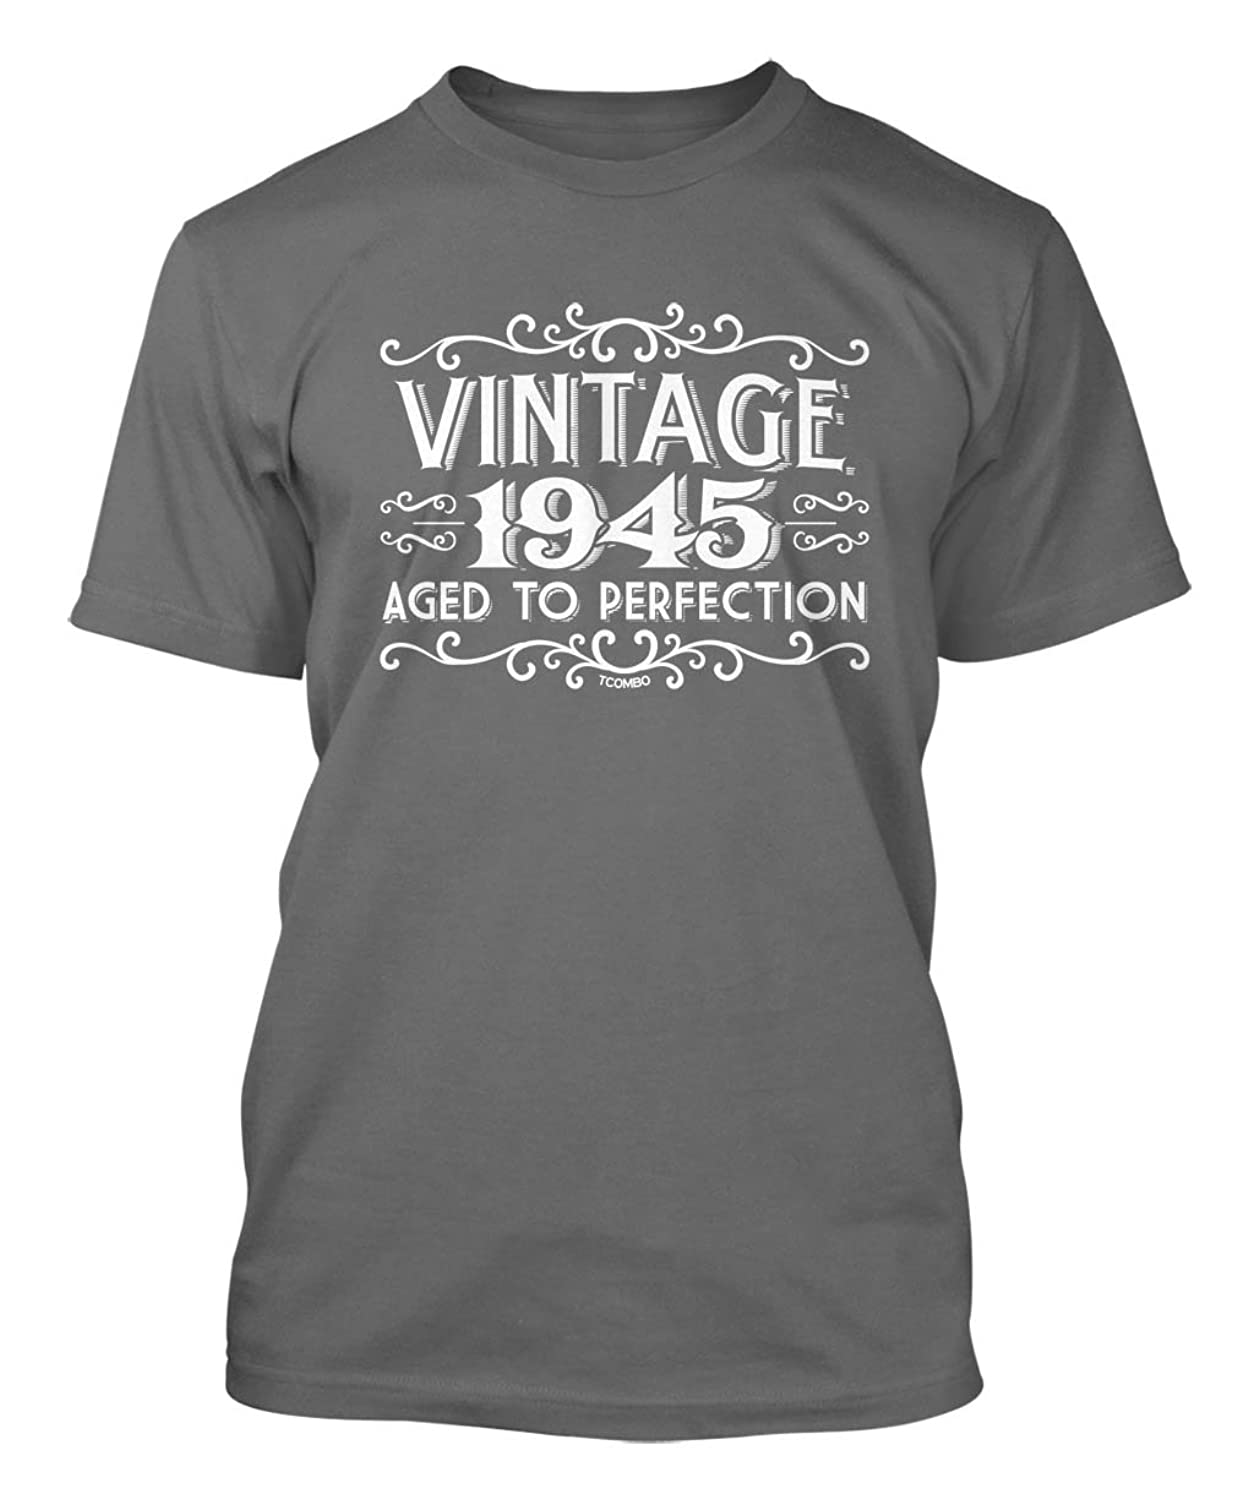 Vintage 1945 Aged To Perfection 70th Birthday Men's T-shirt